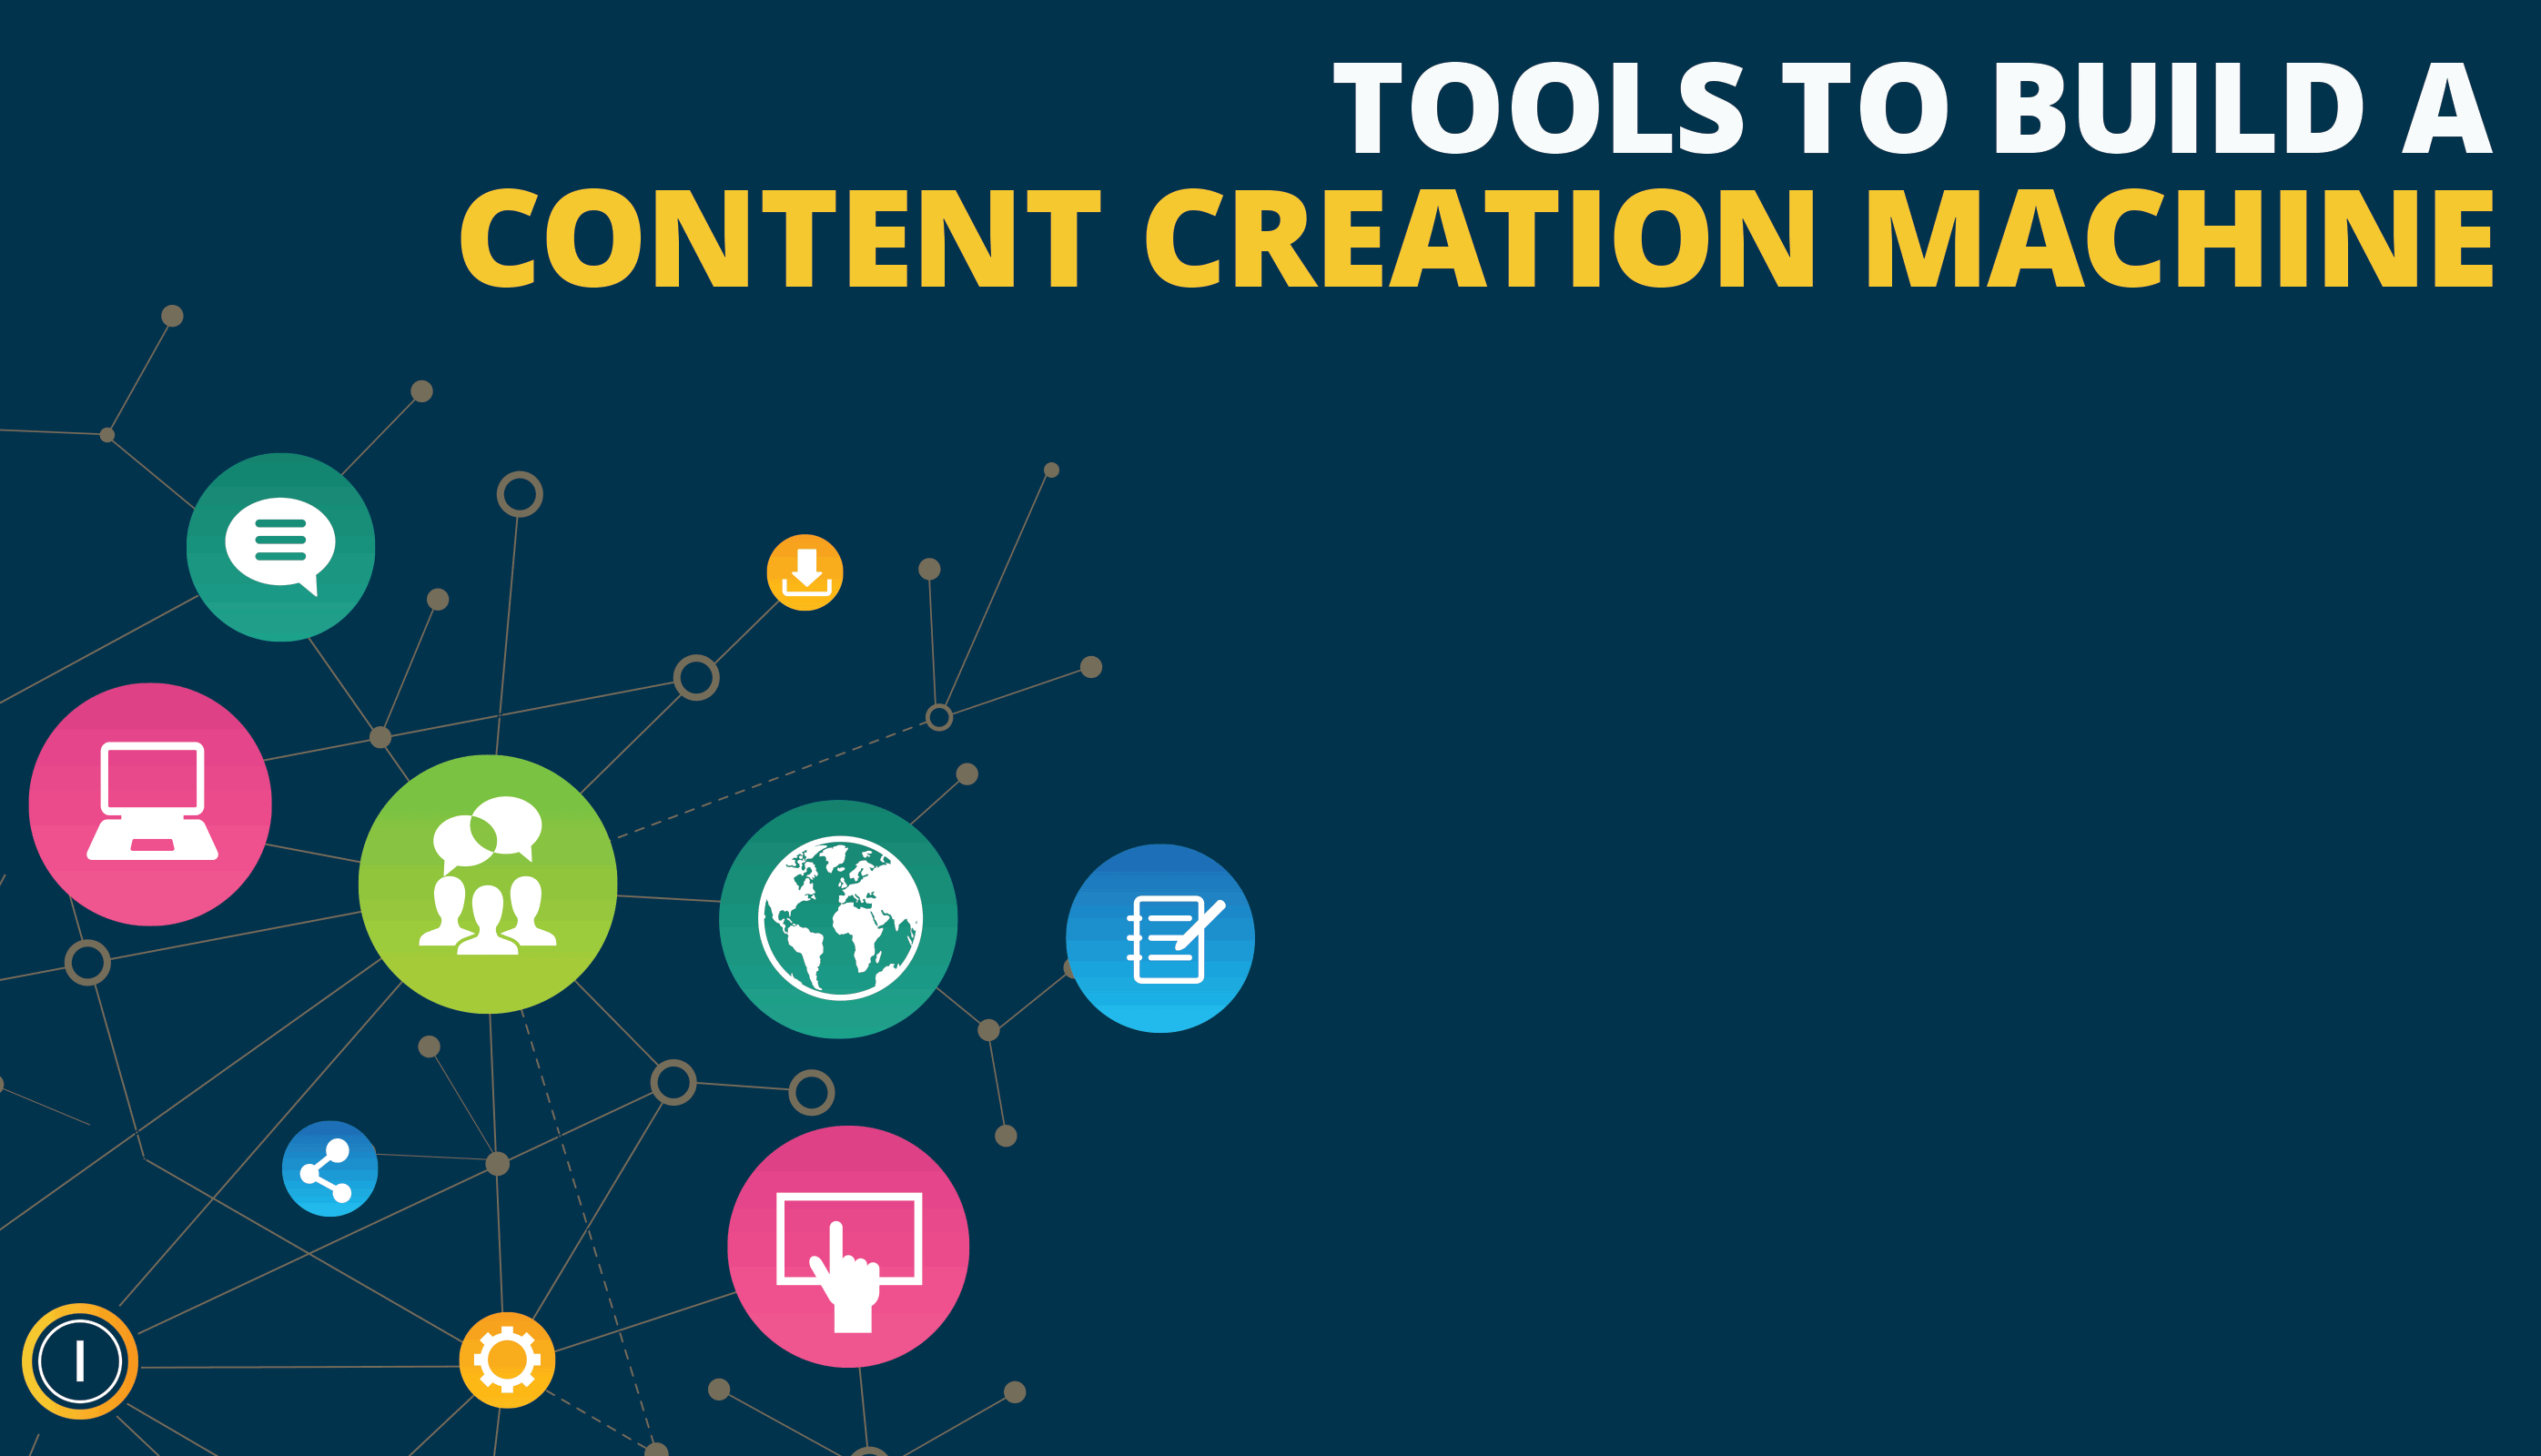 Tools to Build a Content Creation Machine